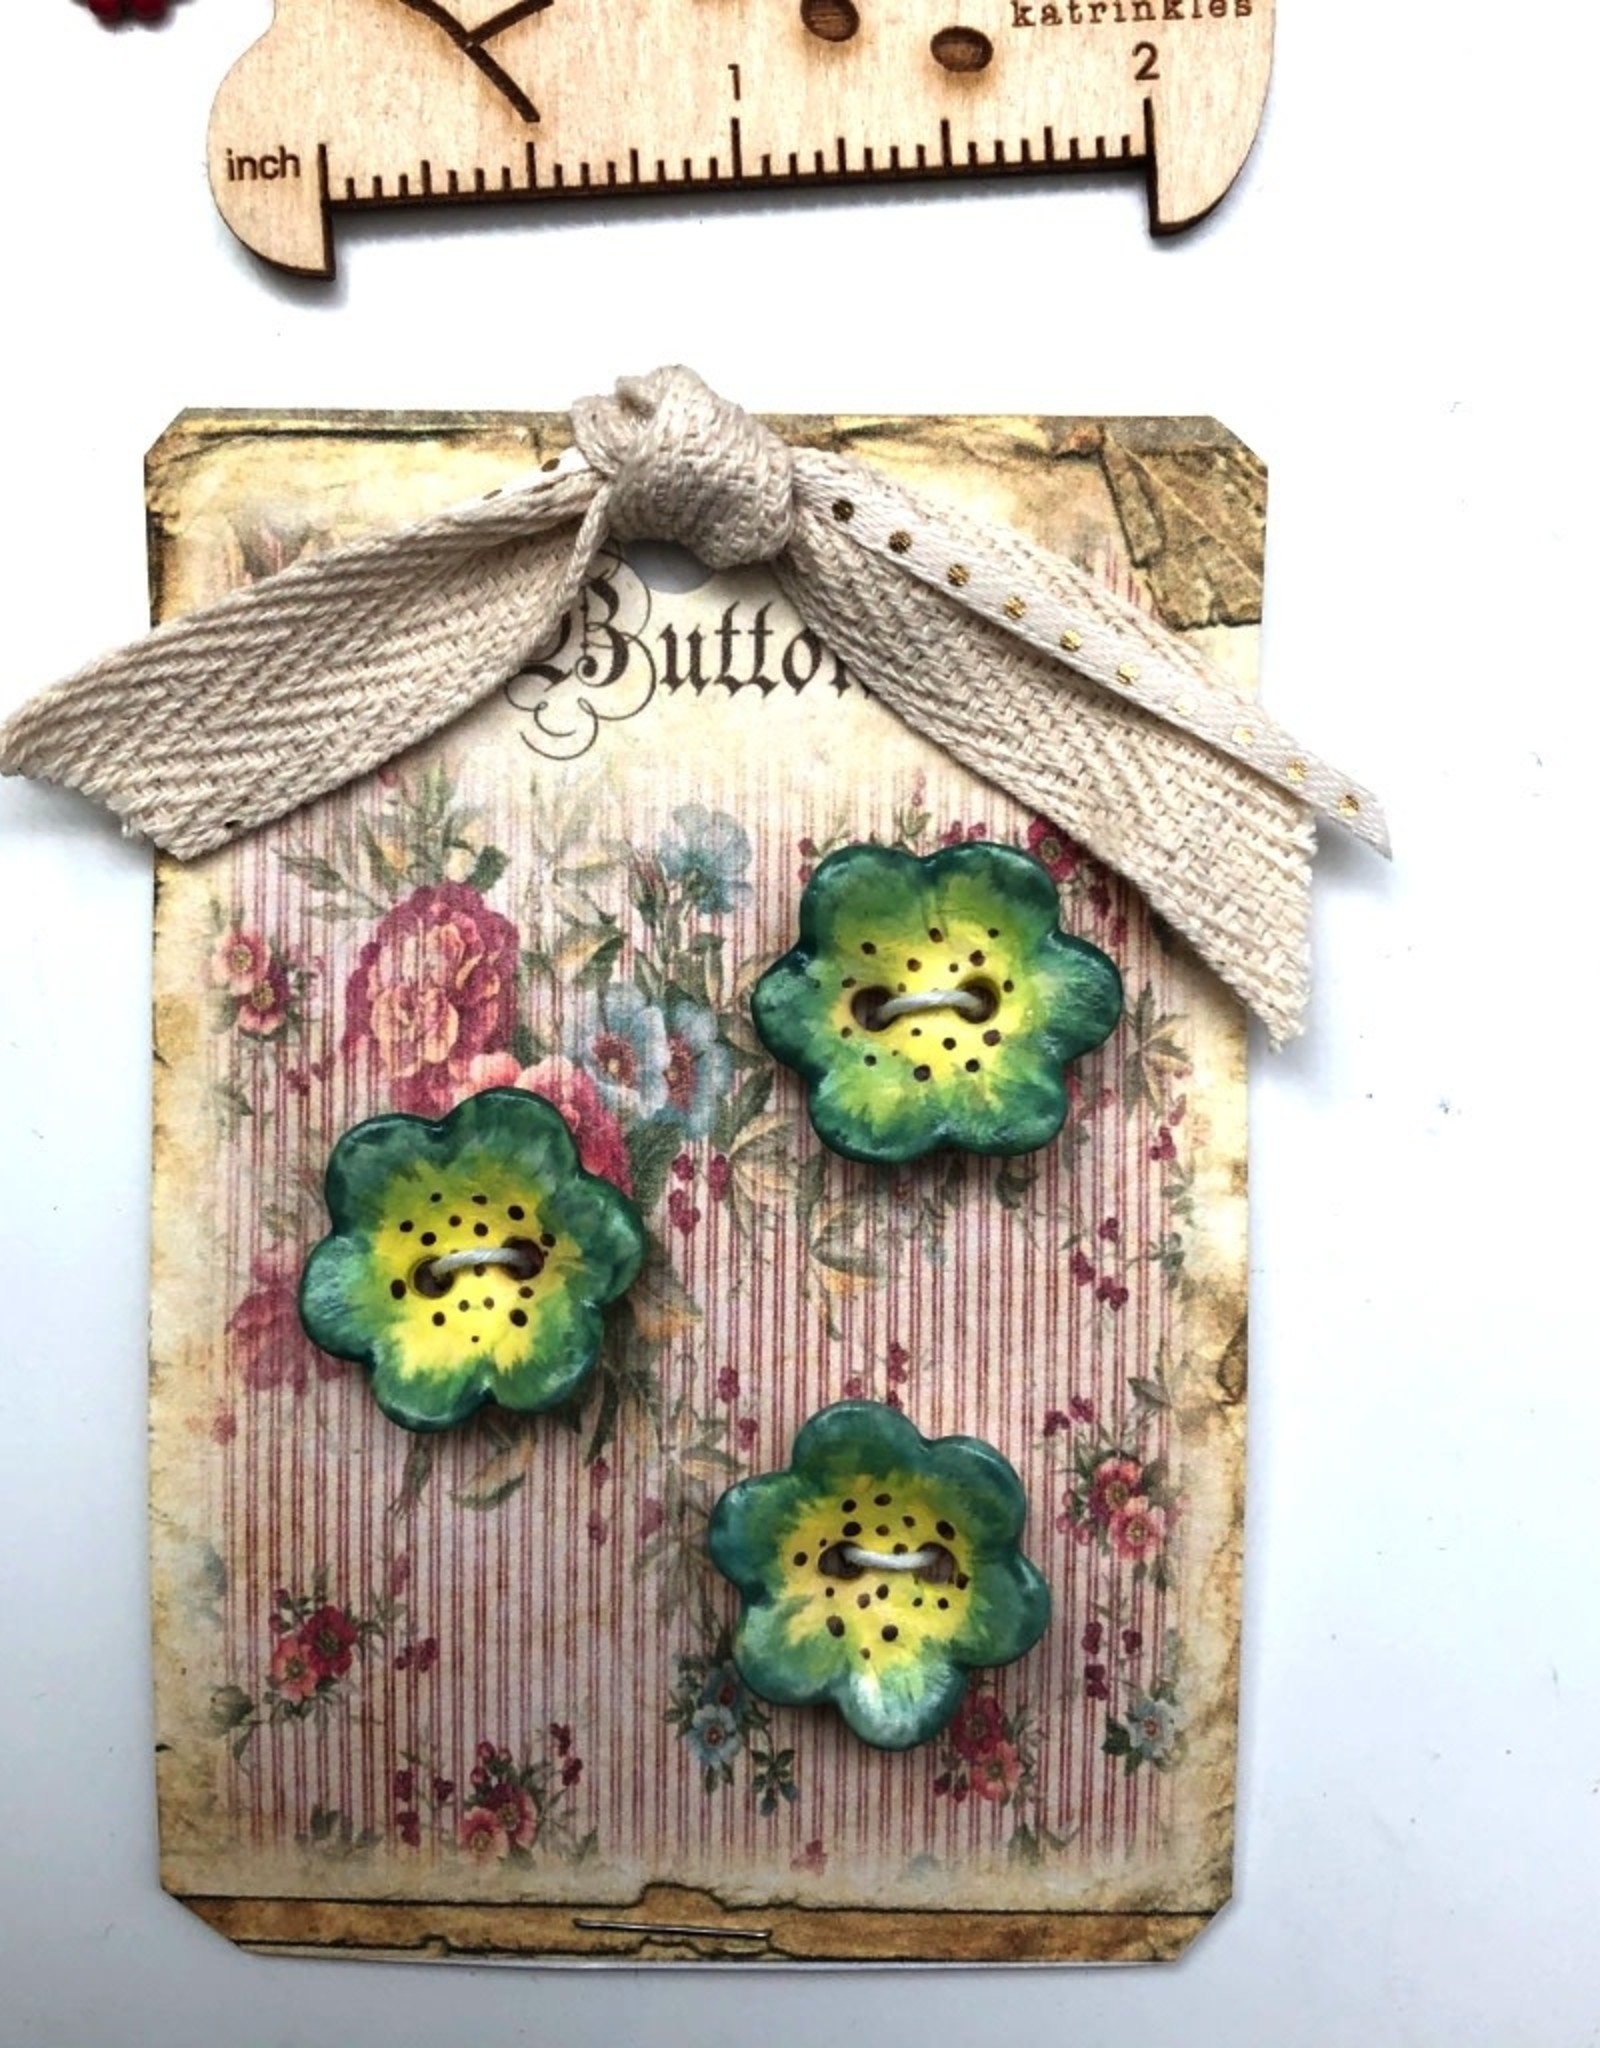 Cynthia Crane Pottery Cynthia Cranes Pottery Flower Buttons - Card of 3